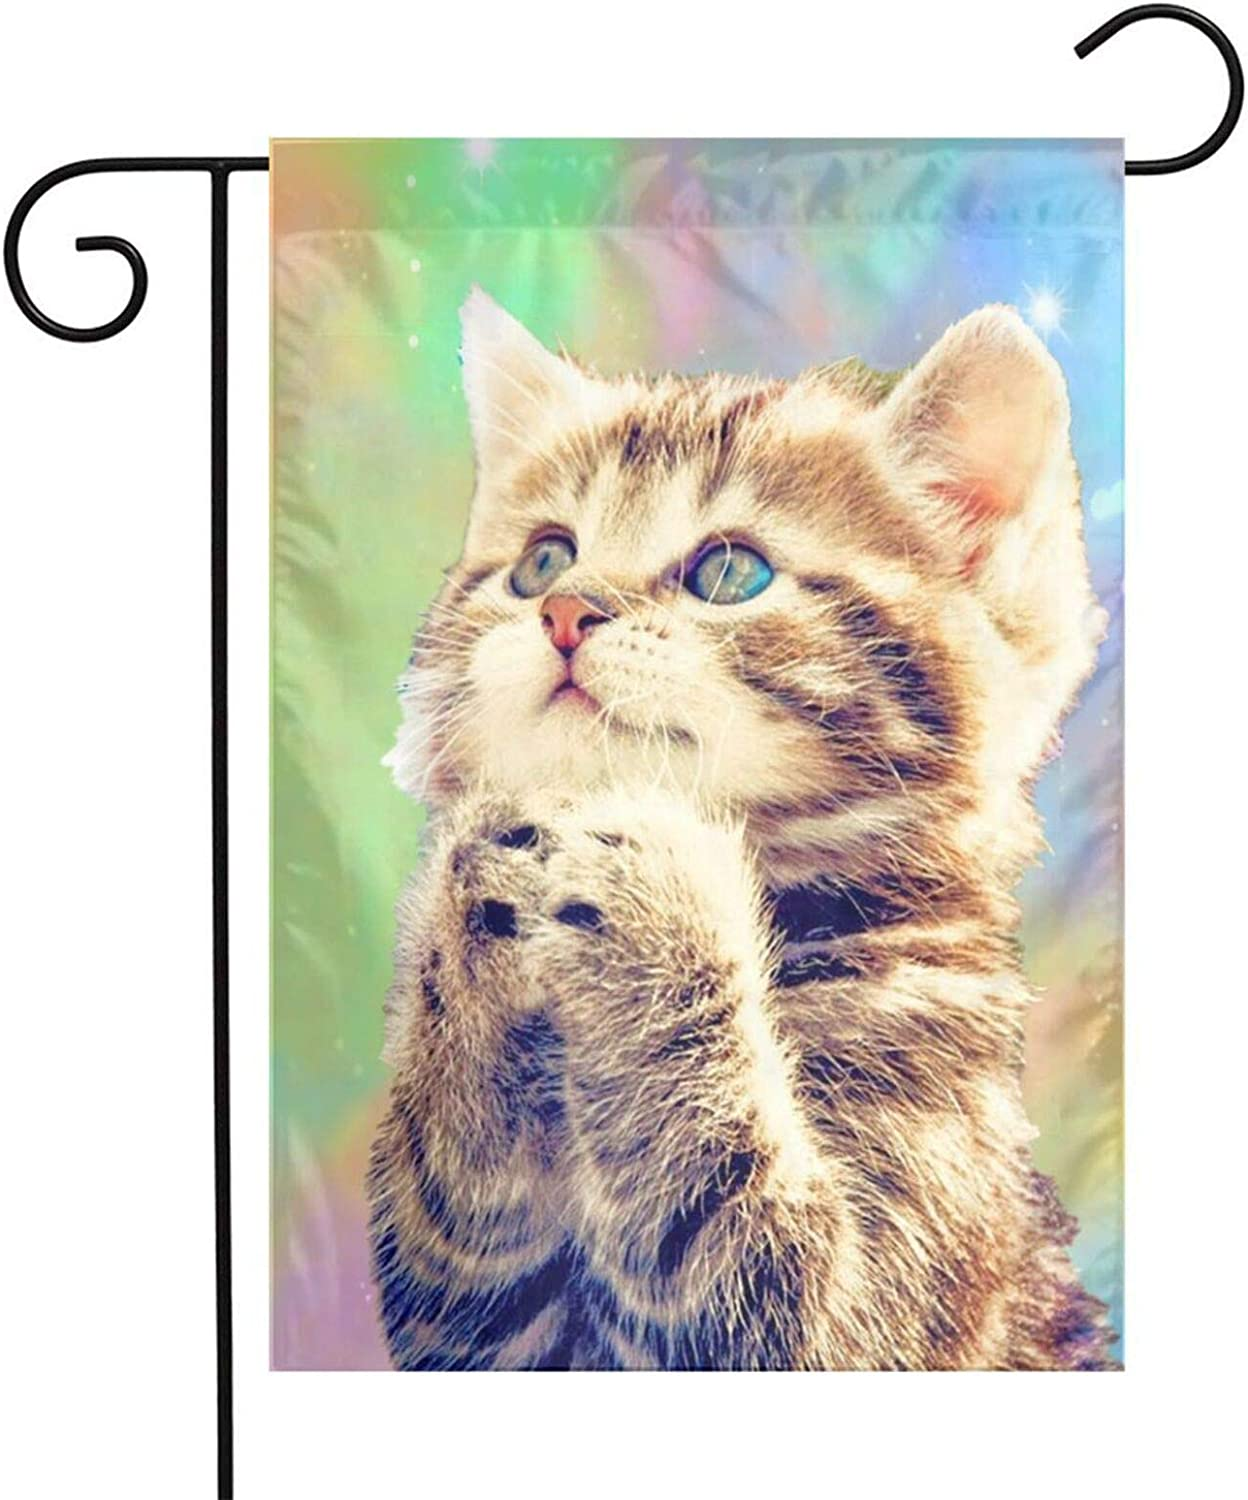 Txocouk Space Cat Welcome Garden Flag Double Sided,Decorative Garden Flag Yard Banner for Outdoor Decorations(12x18in)